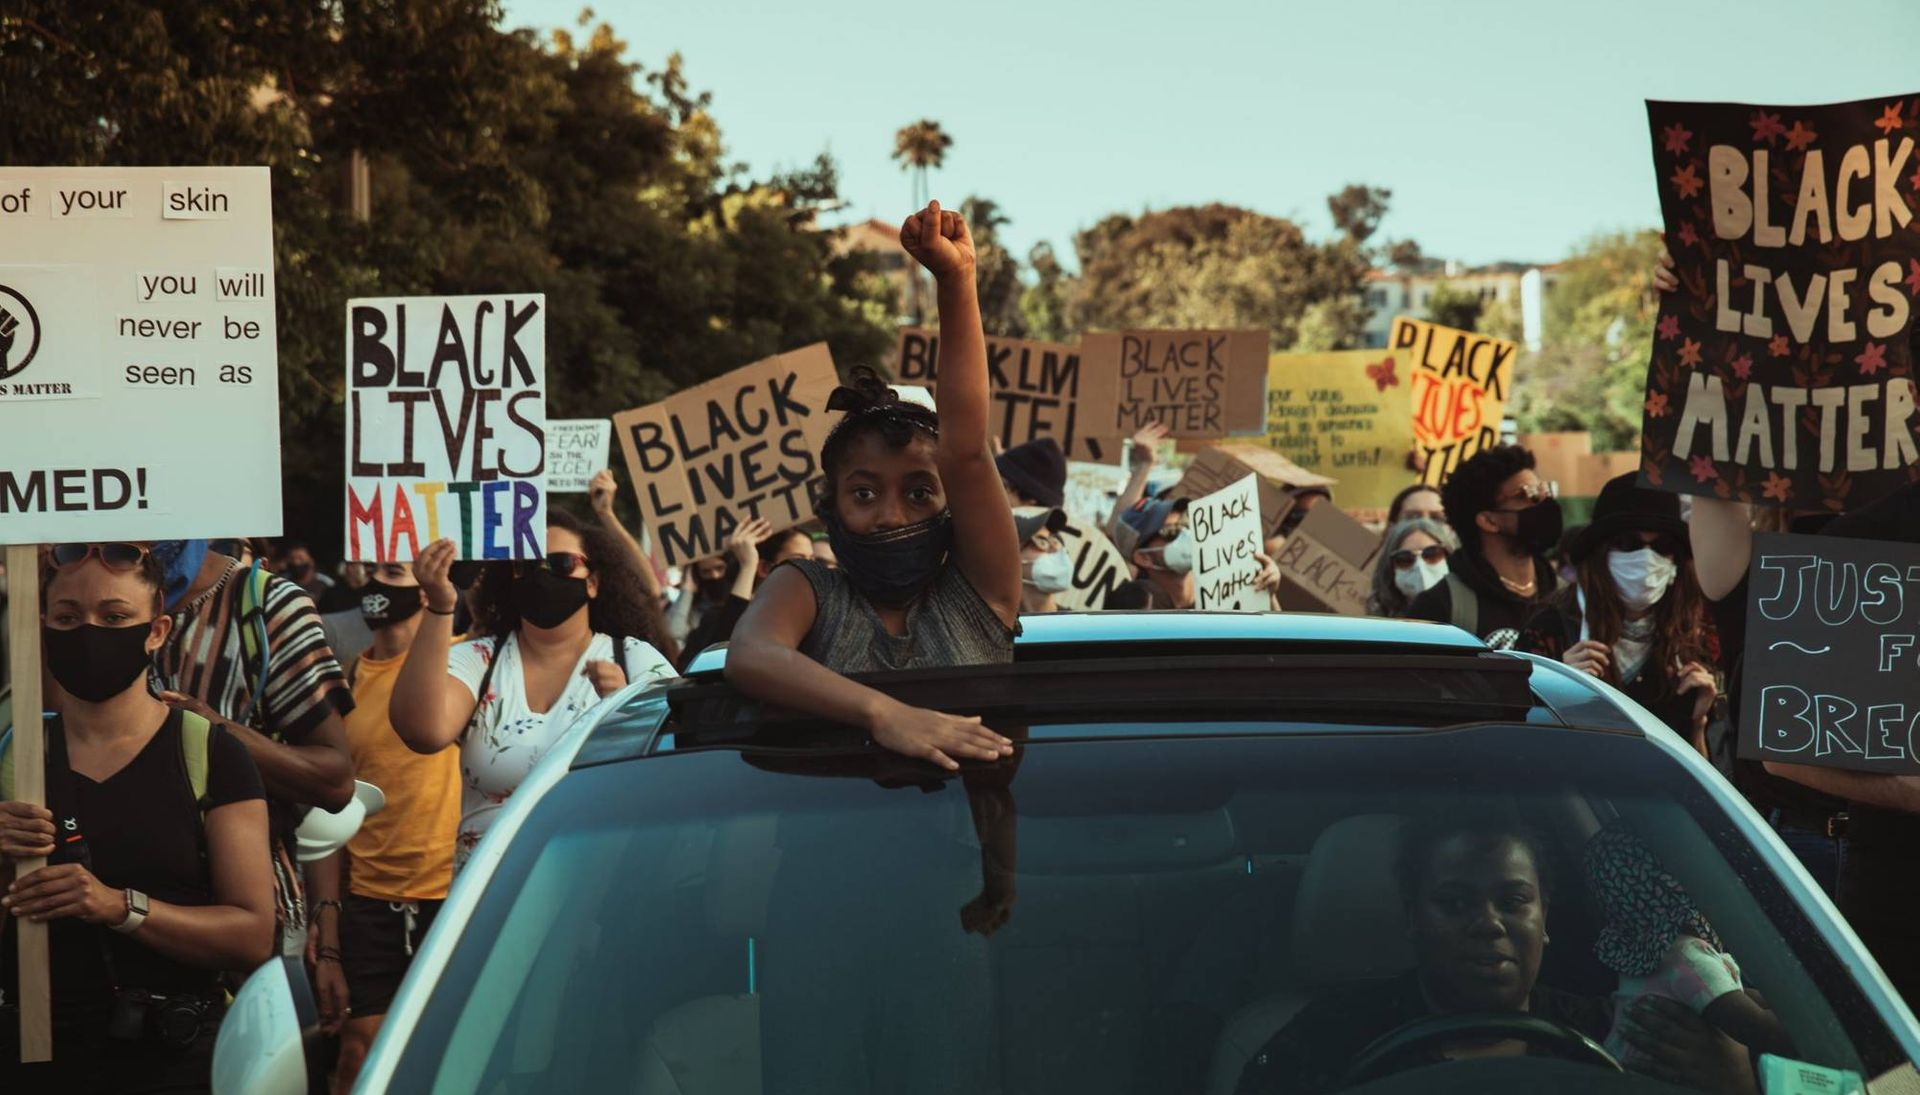 Black Lives Matters protesters on a Los Angeles street